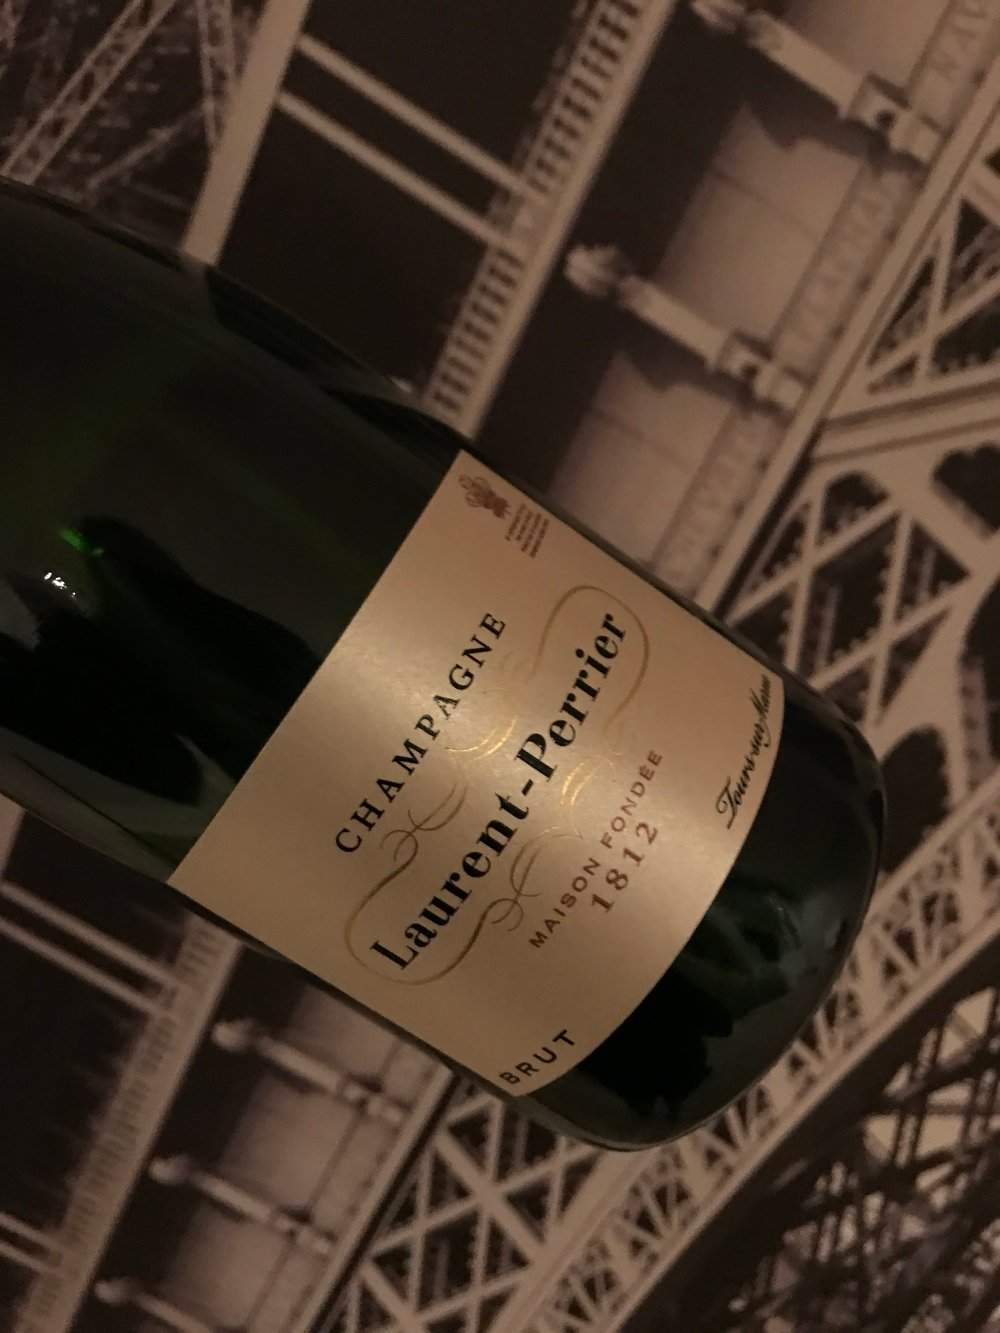 How to open Champagne, what is champagne, Laurent-Perrier